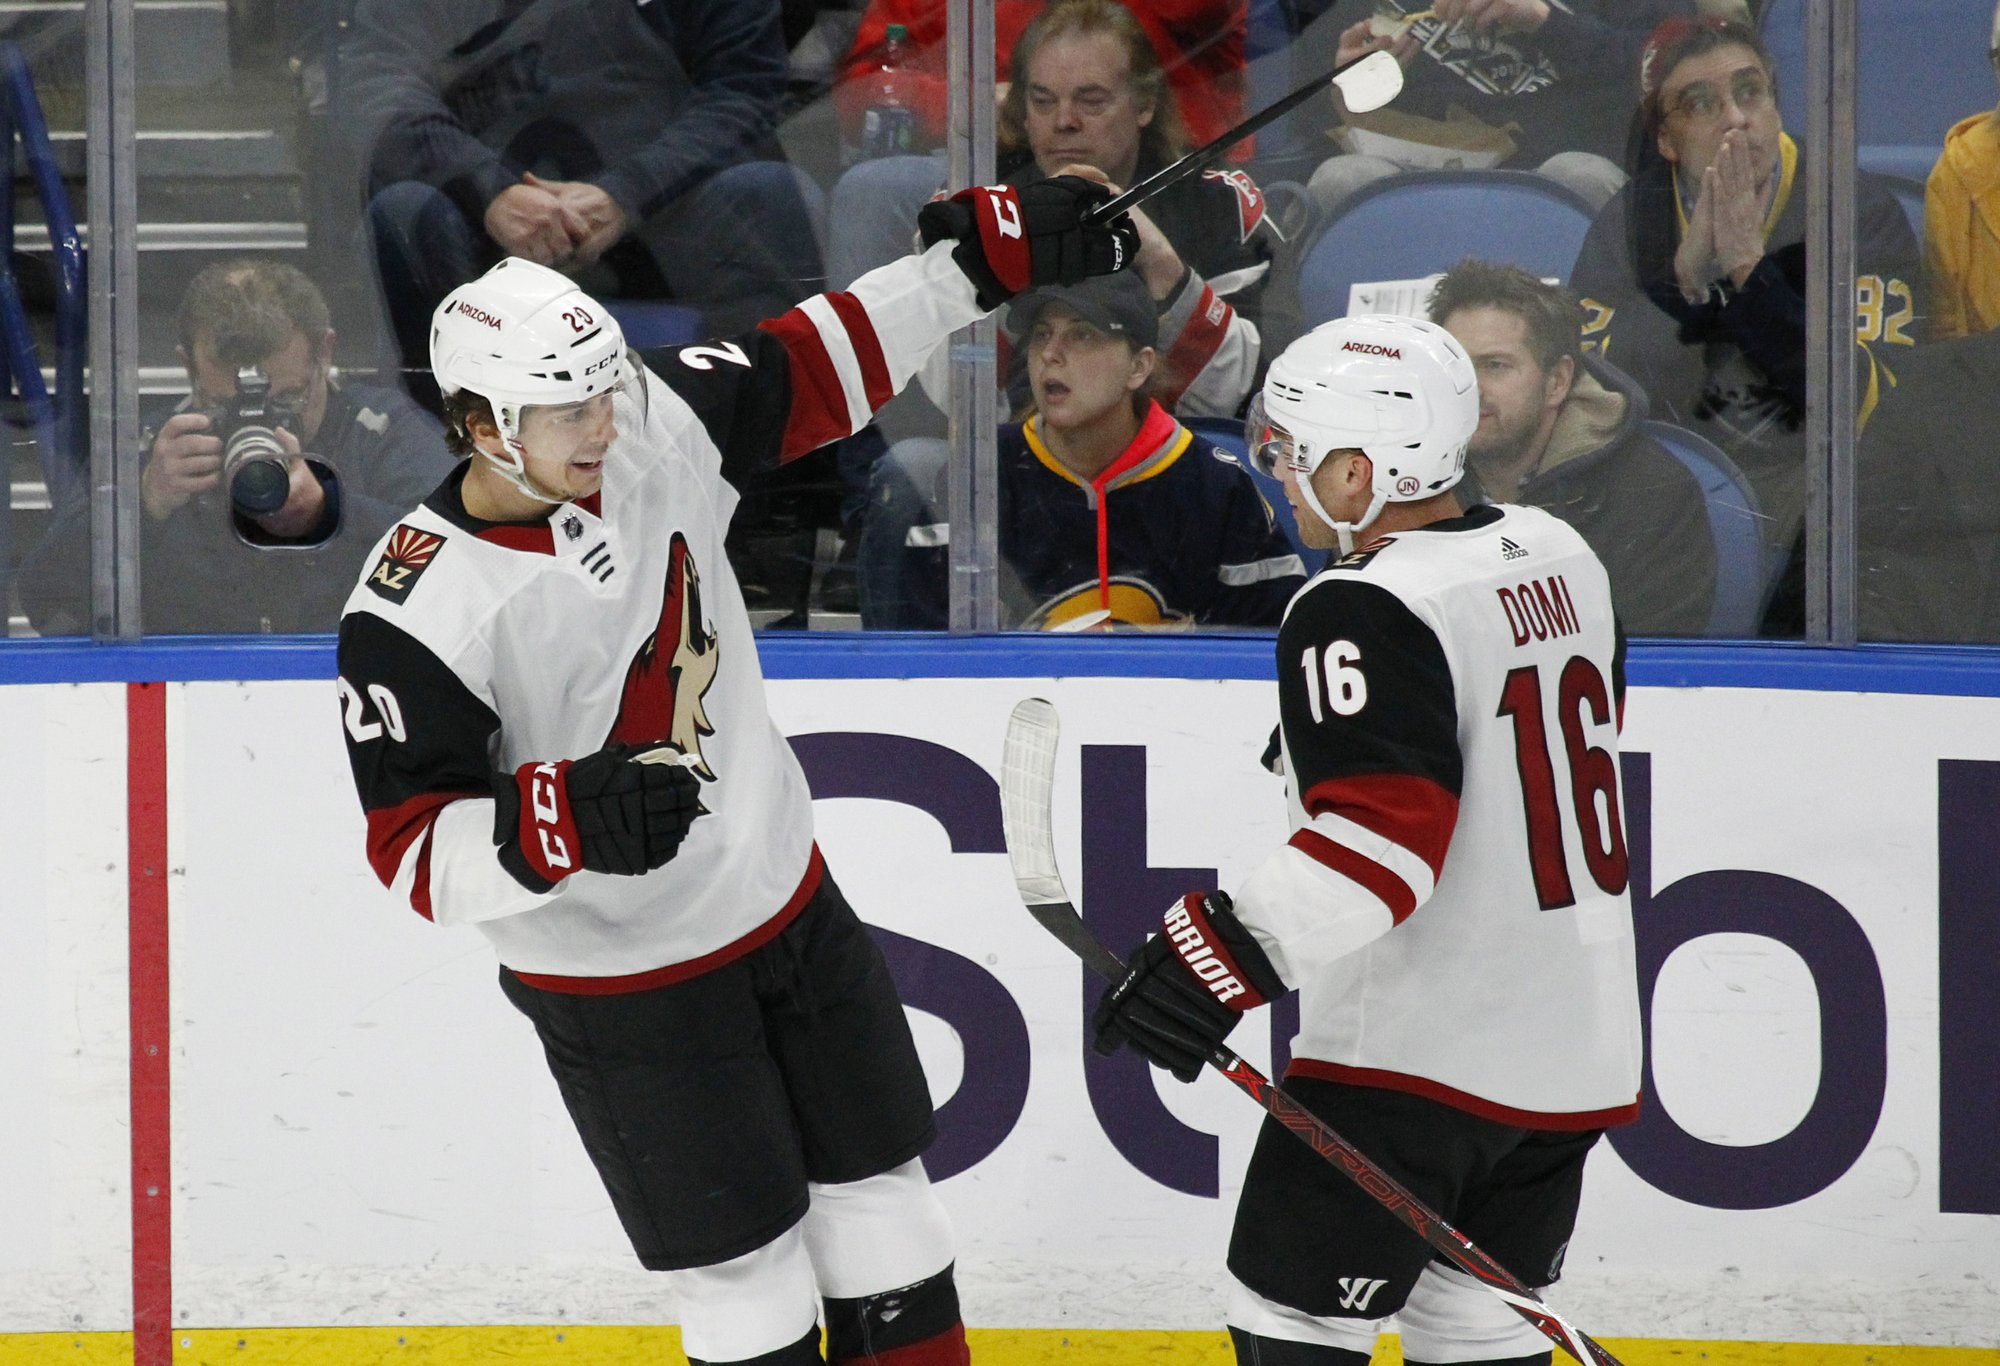 724d15631 Arizona Coyotes Dylan Strome (20) and Max Domi (16) celebrate a goal during  the first period of the team s NHL hockey game against the Buffalo Sabres  on ...